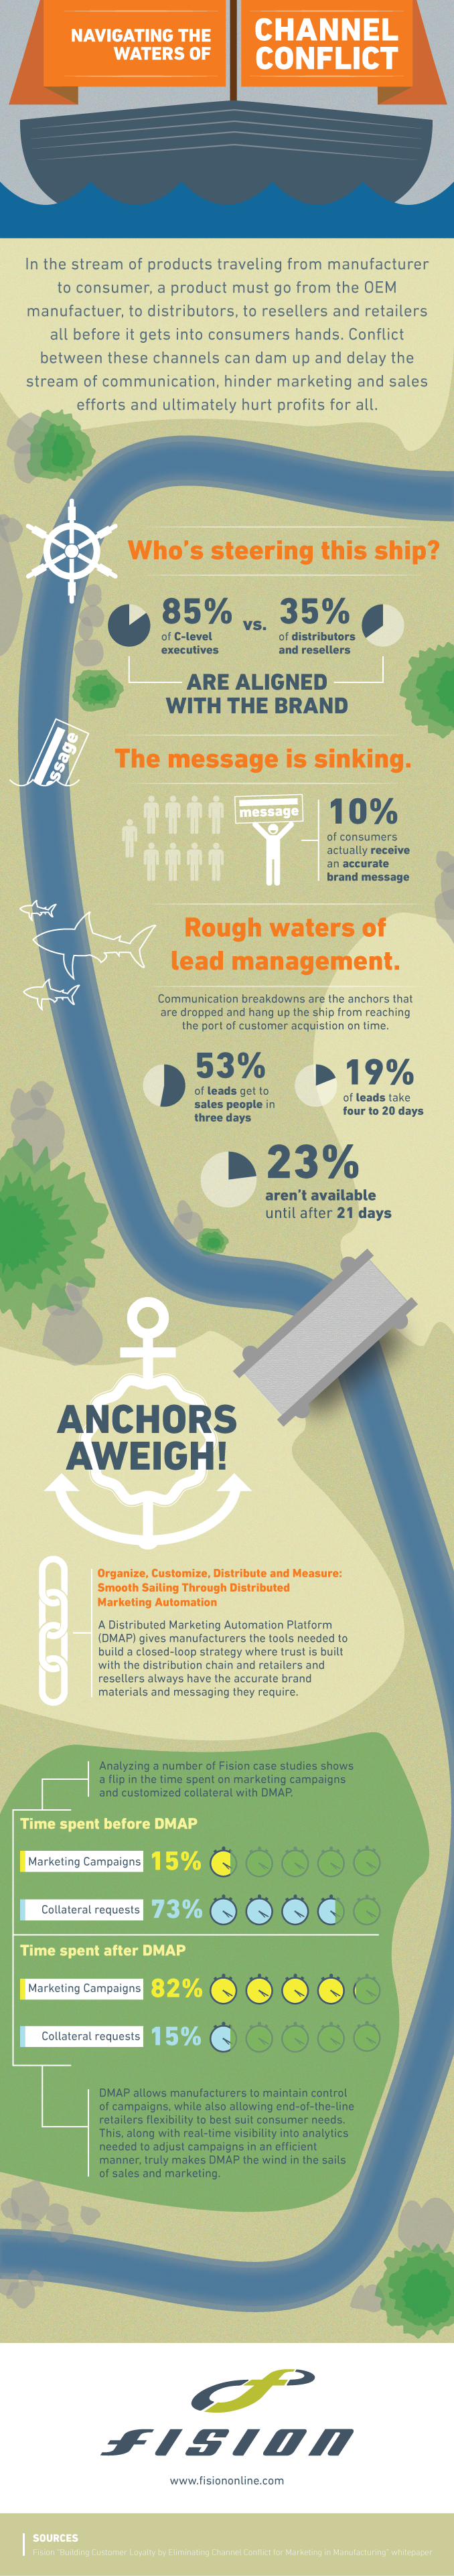 Fision Infographic - Navigating the Waters of Channel Conflict for Manufacturing Marketers